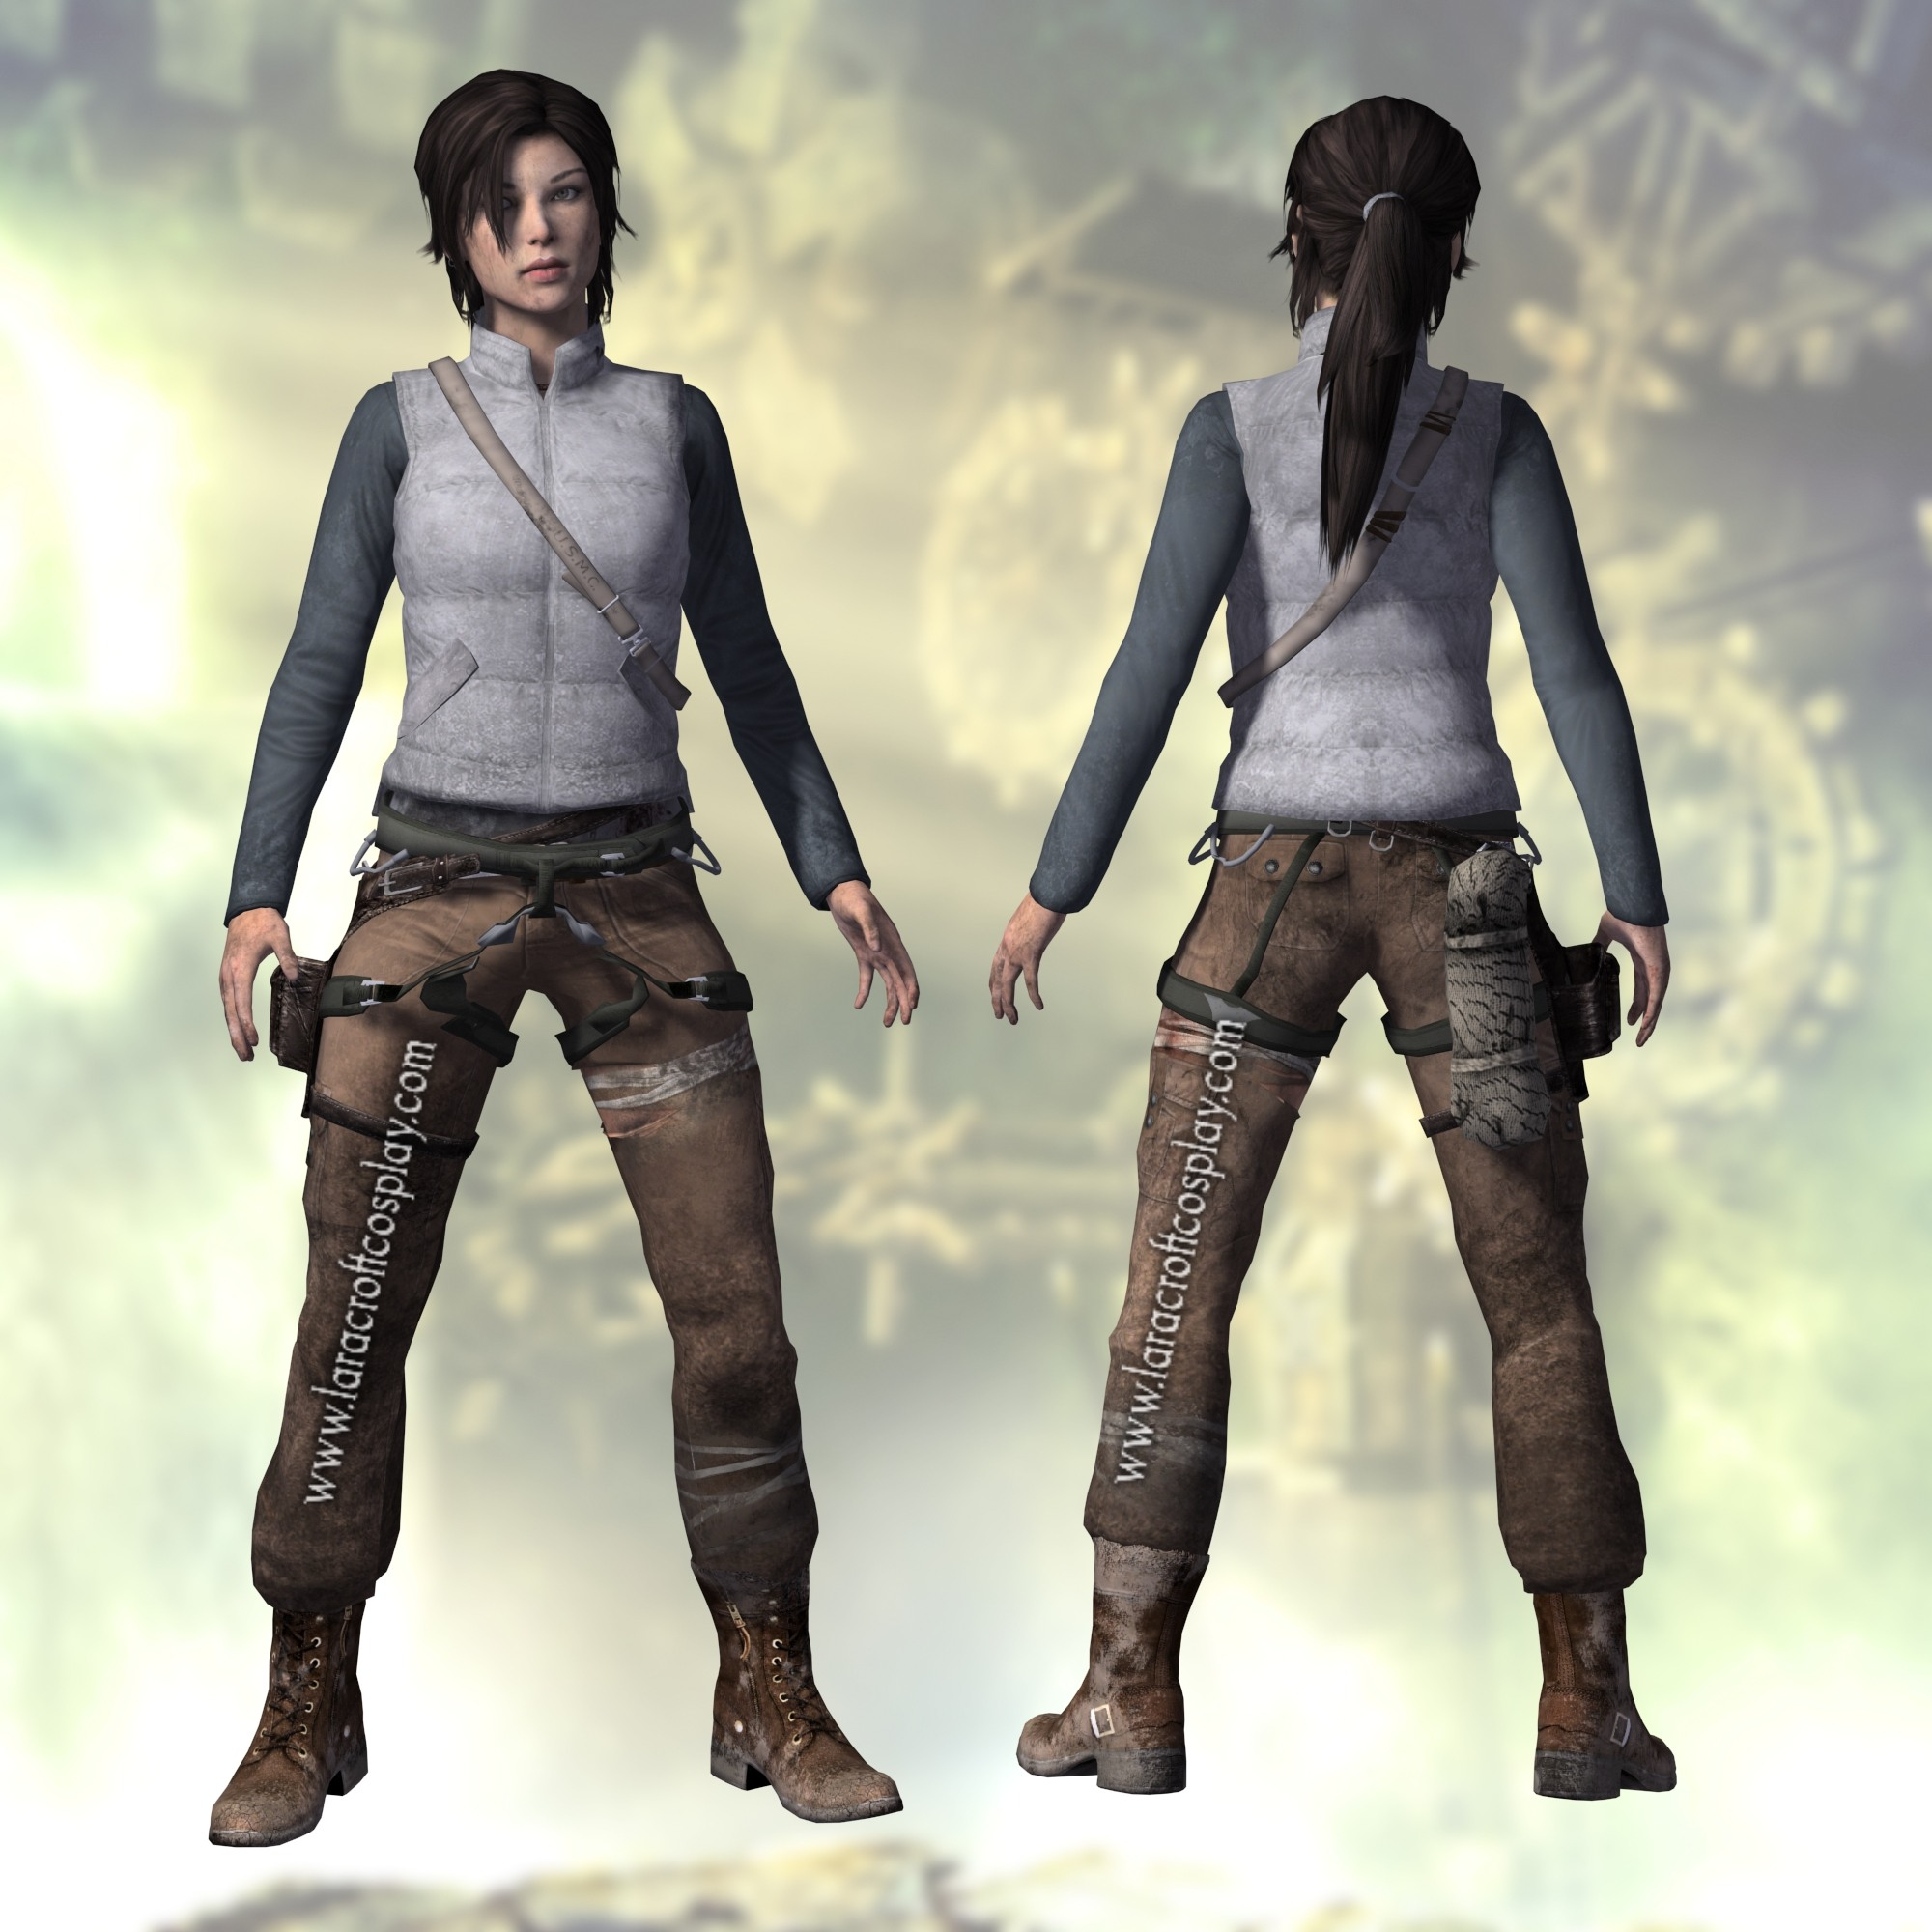 Shadow Of The Tomb Raider All Outfits Armor Costumes: TOMB RAIDER GAME COSTUMES Laracroftcosplay.com Lara Croft